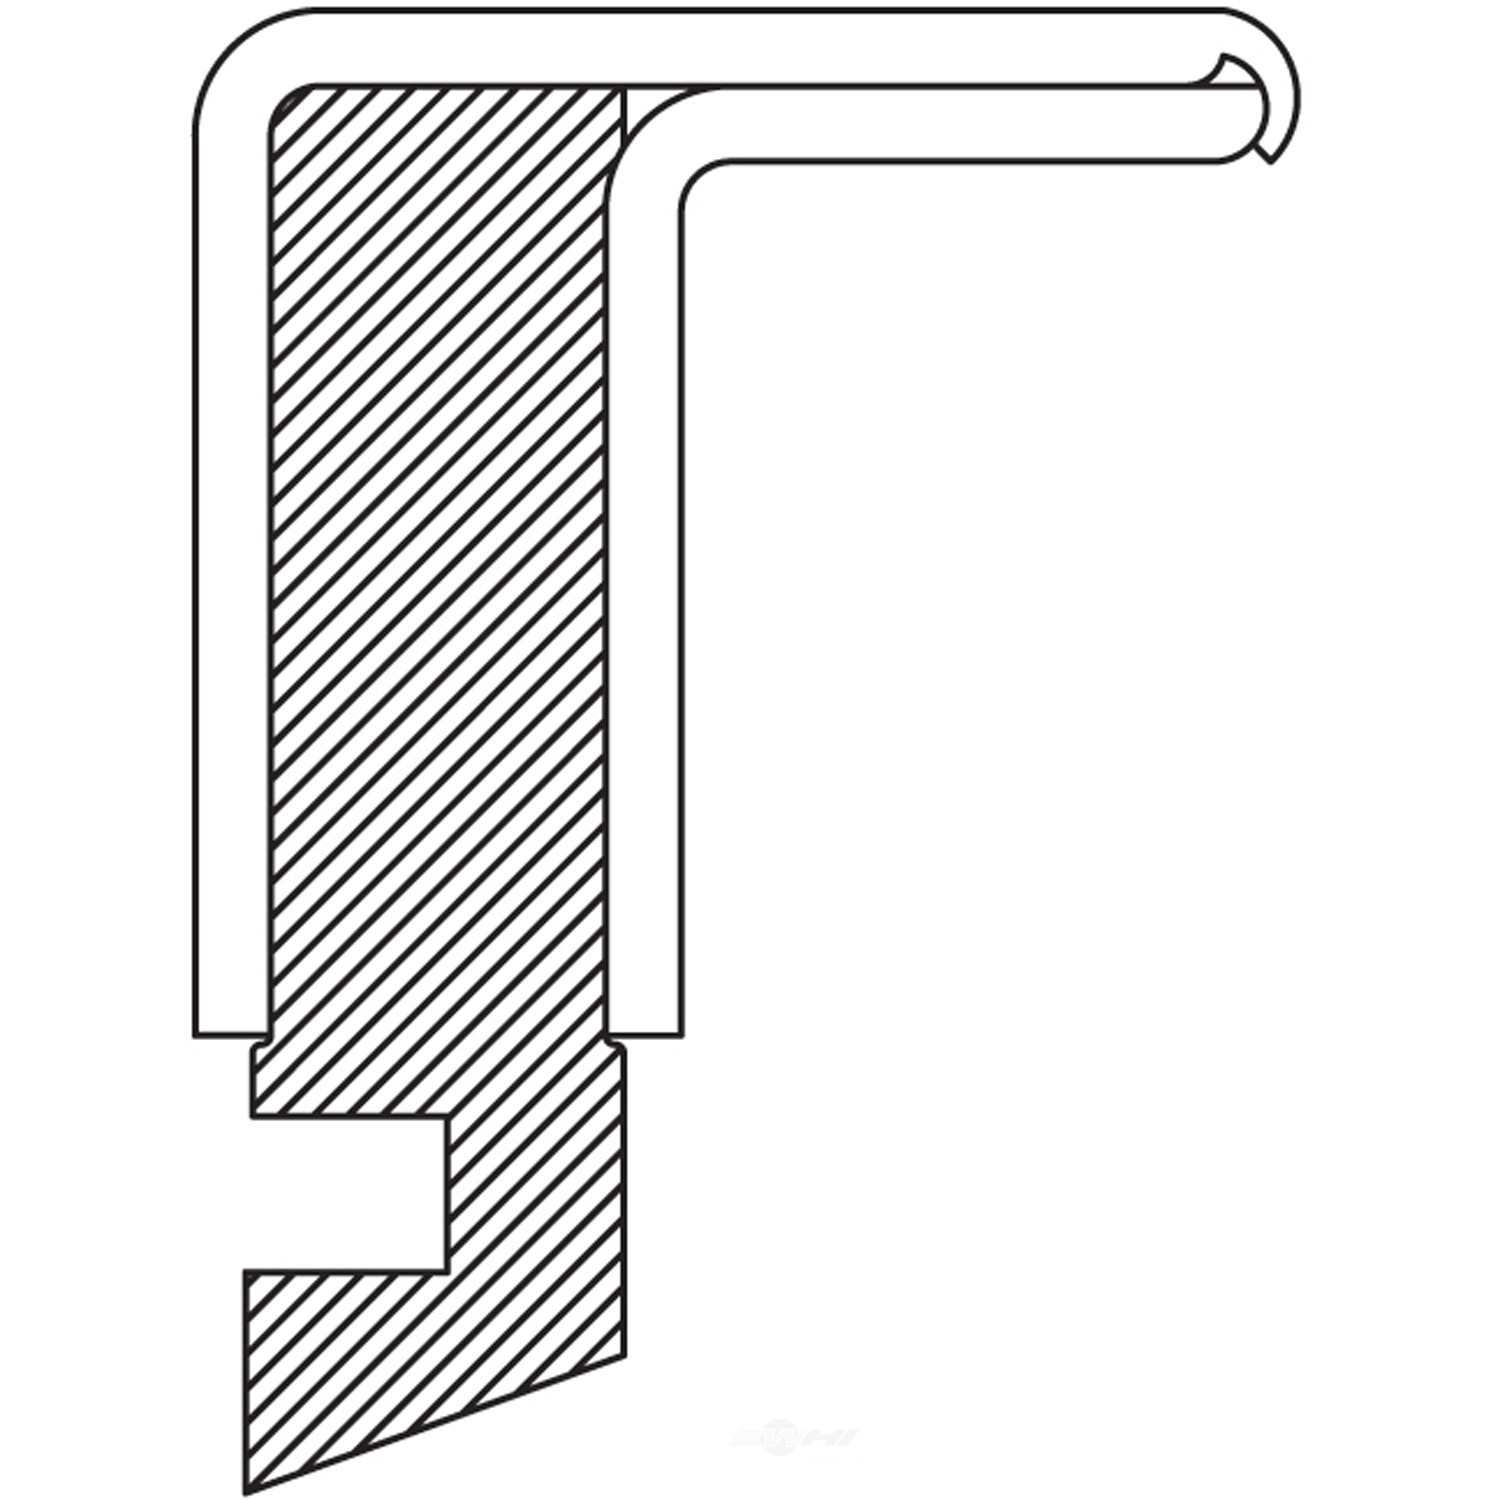 NATIONAL SEALS - Steering Knuckle Seal - NAT 204005